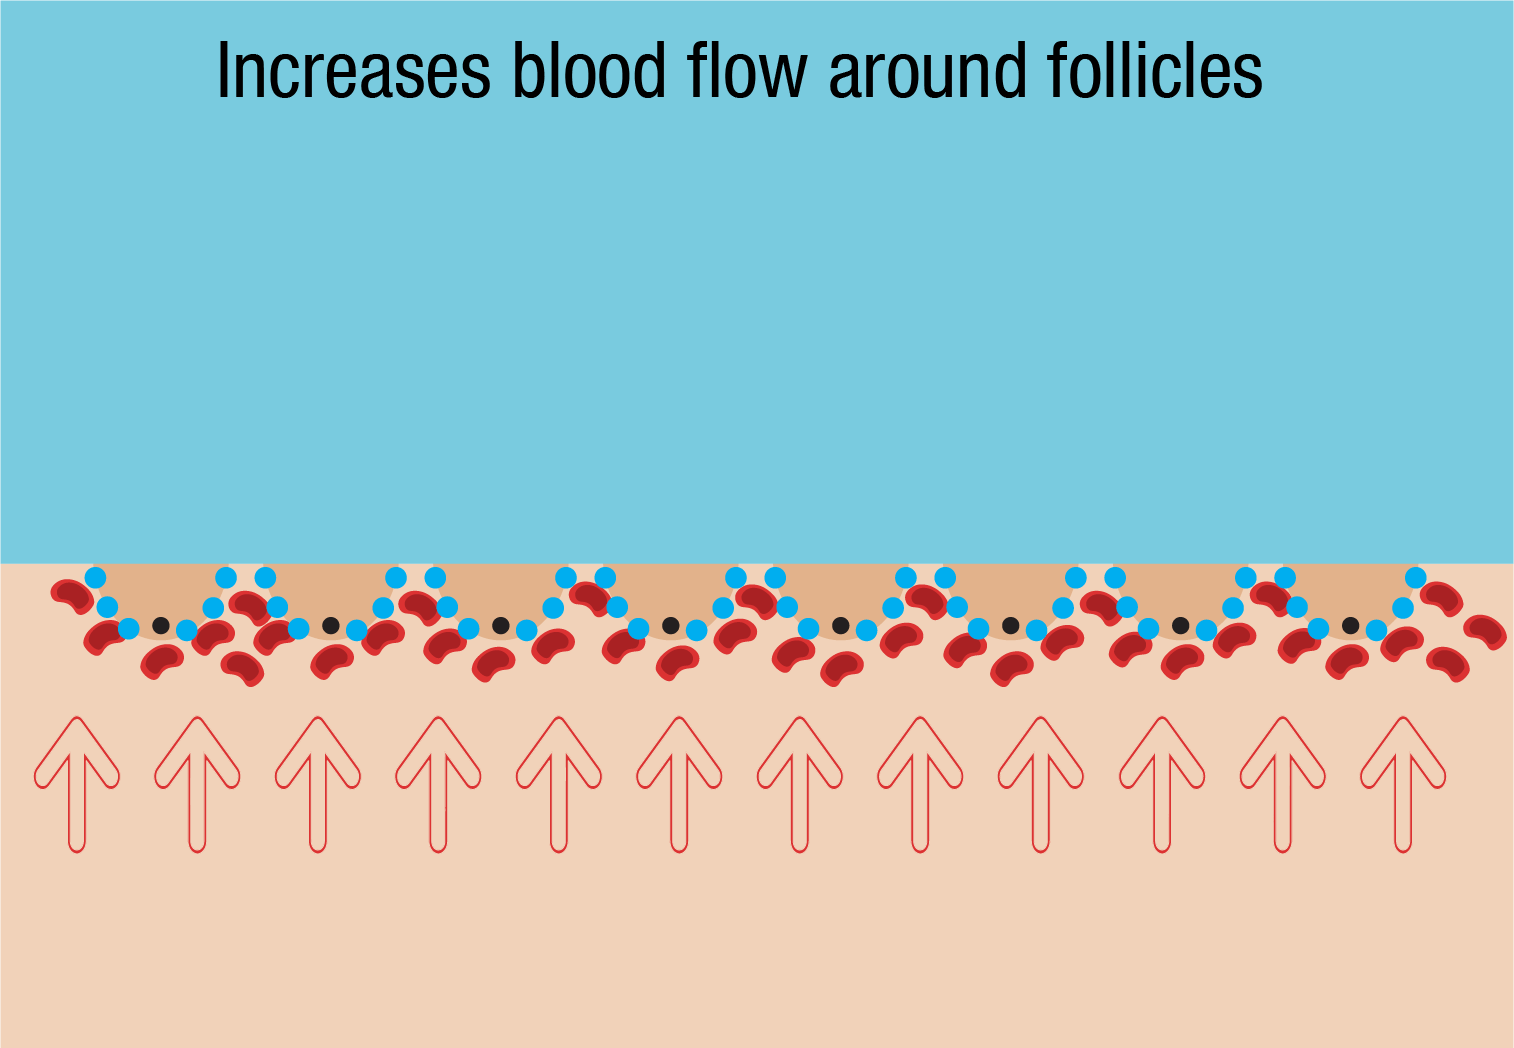 increased blood flow around follicles